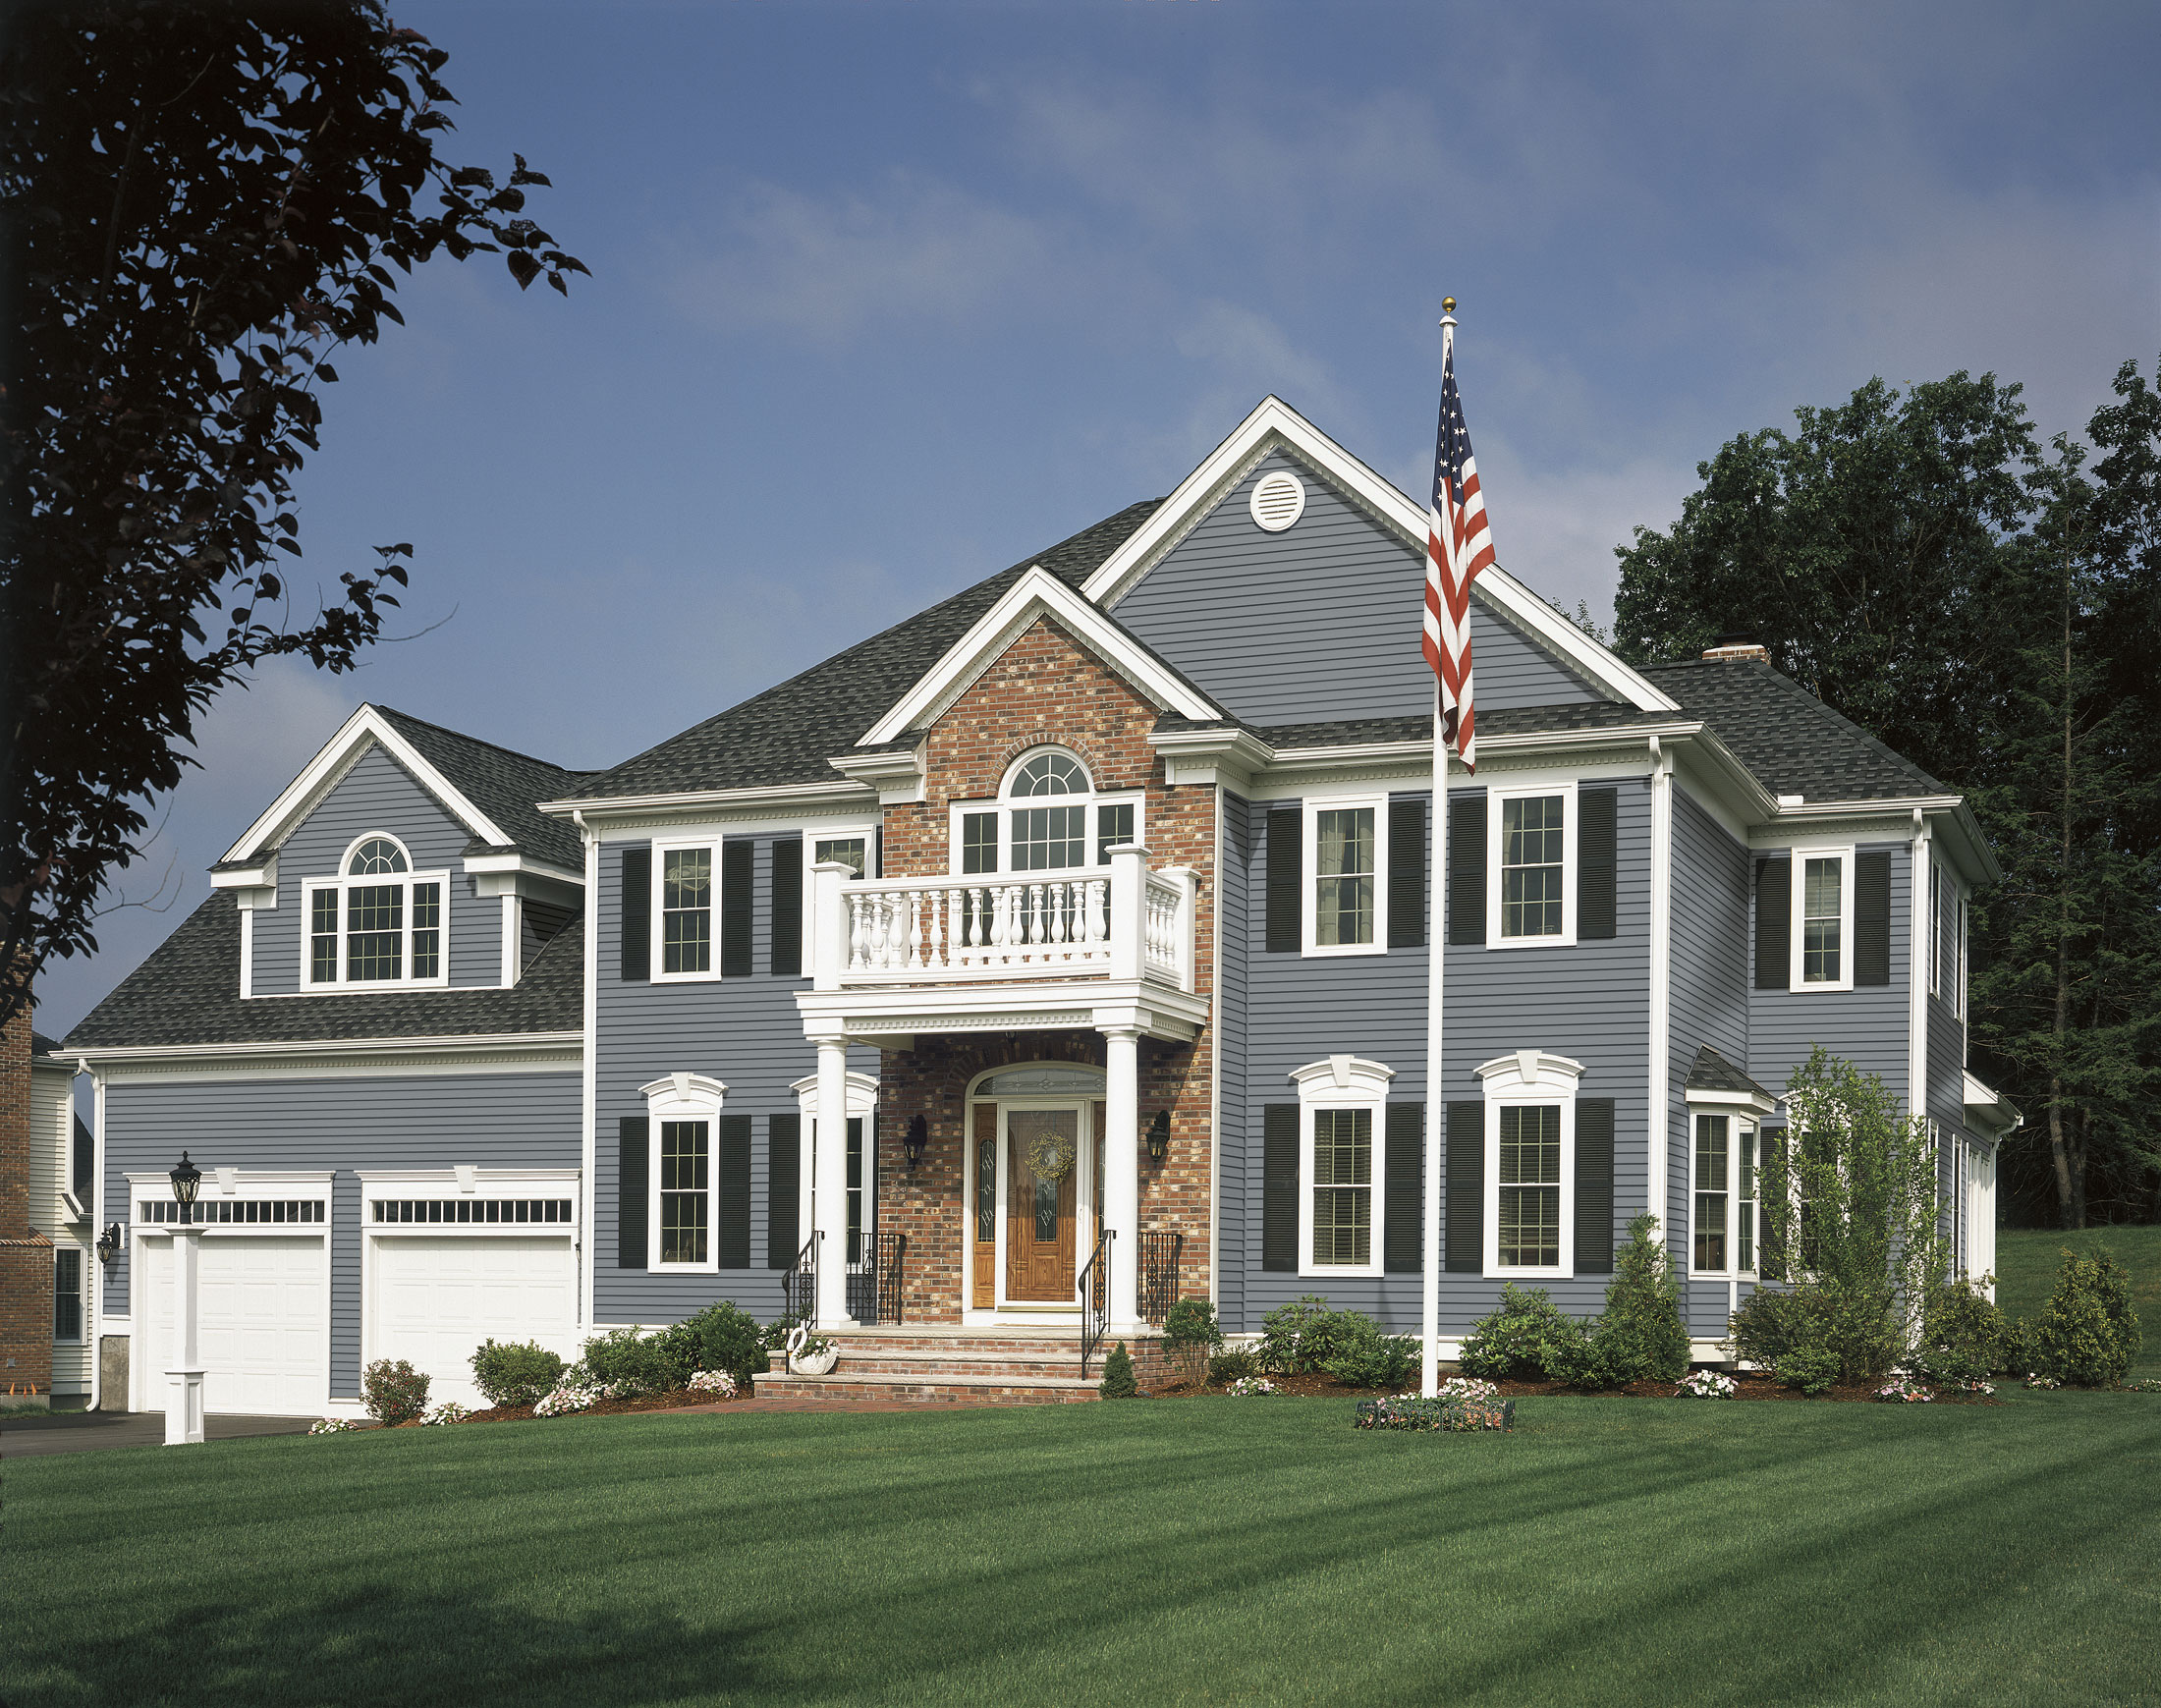 Products And Services Premier Home Improvement Co